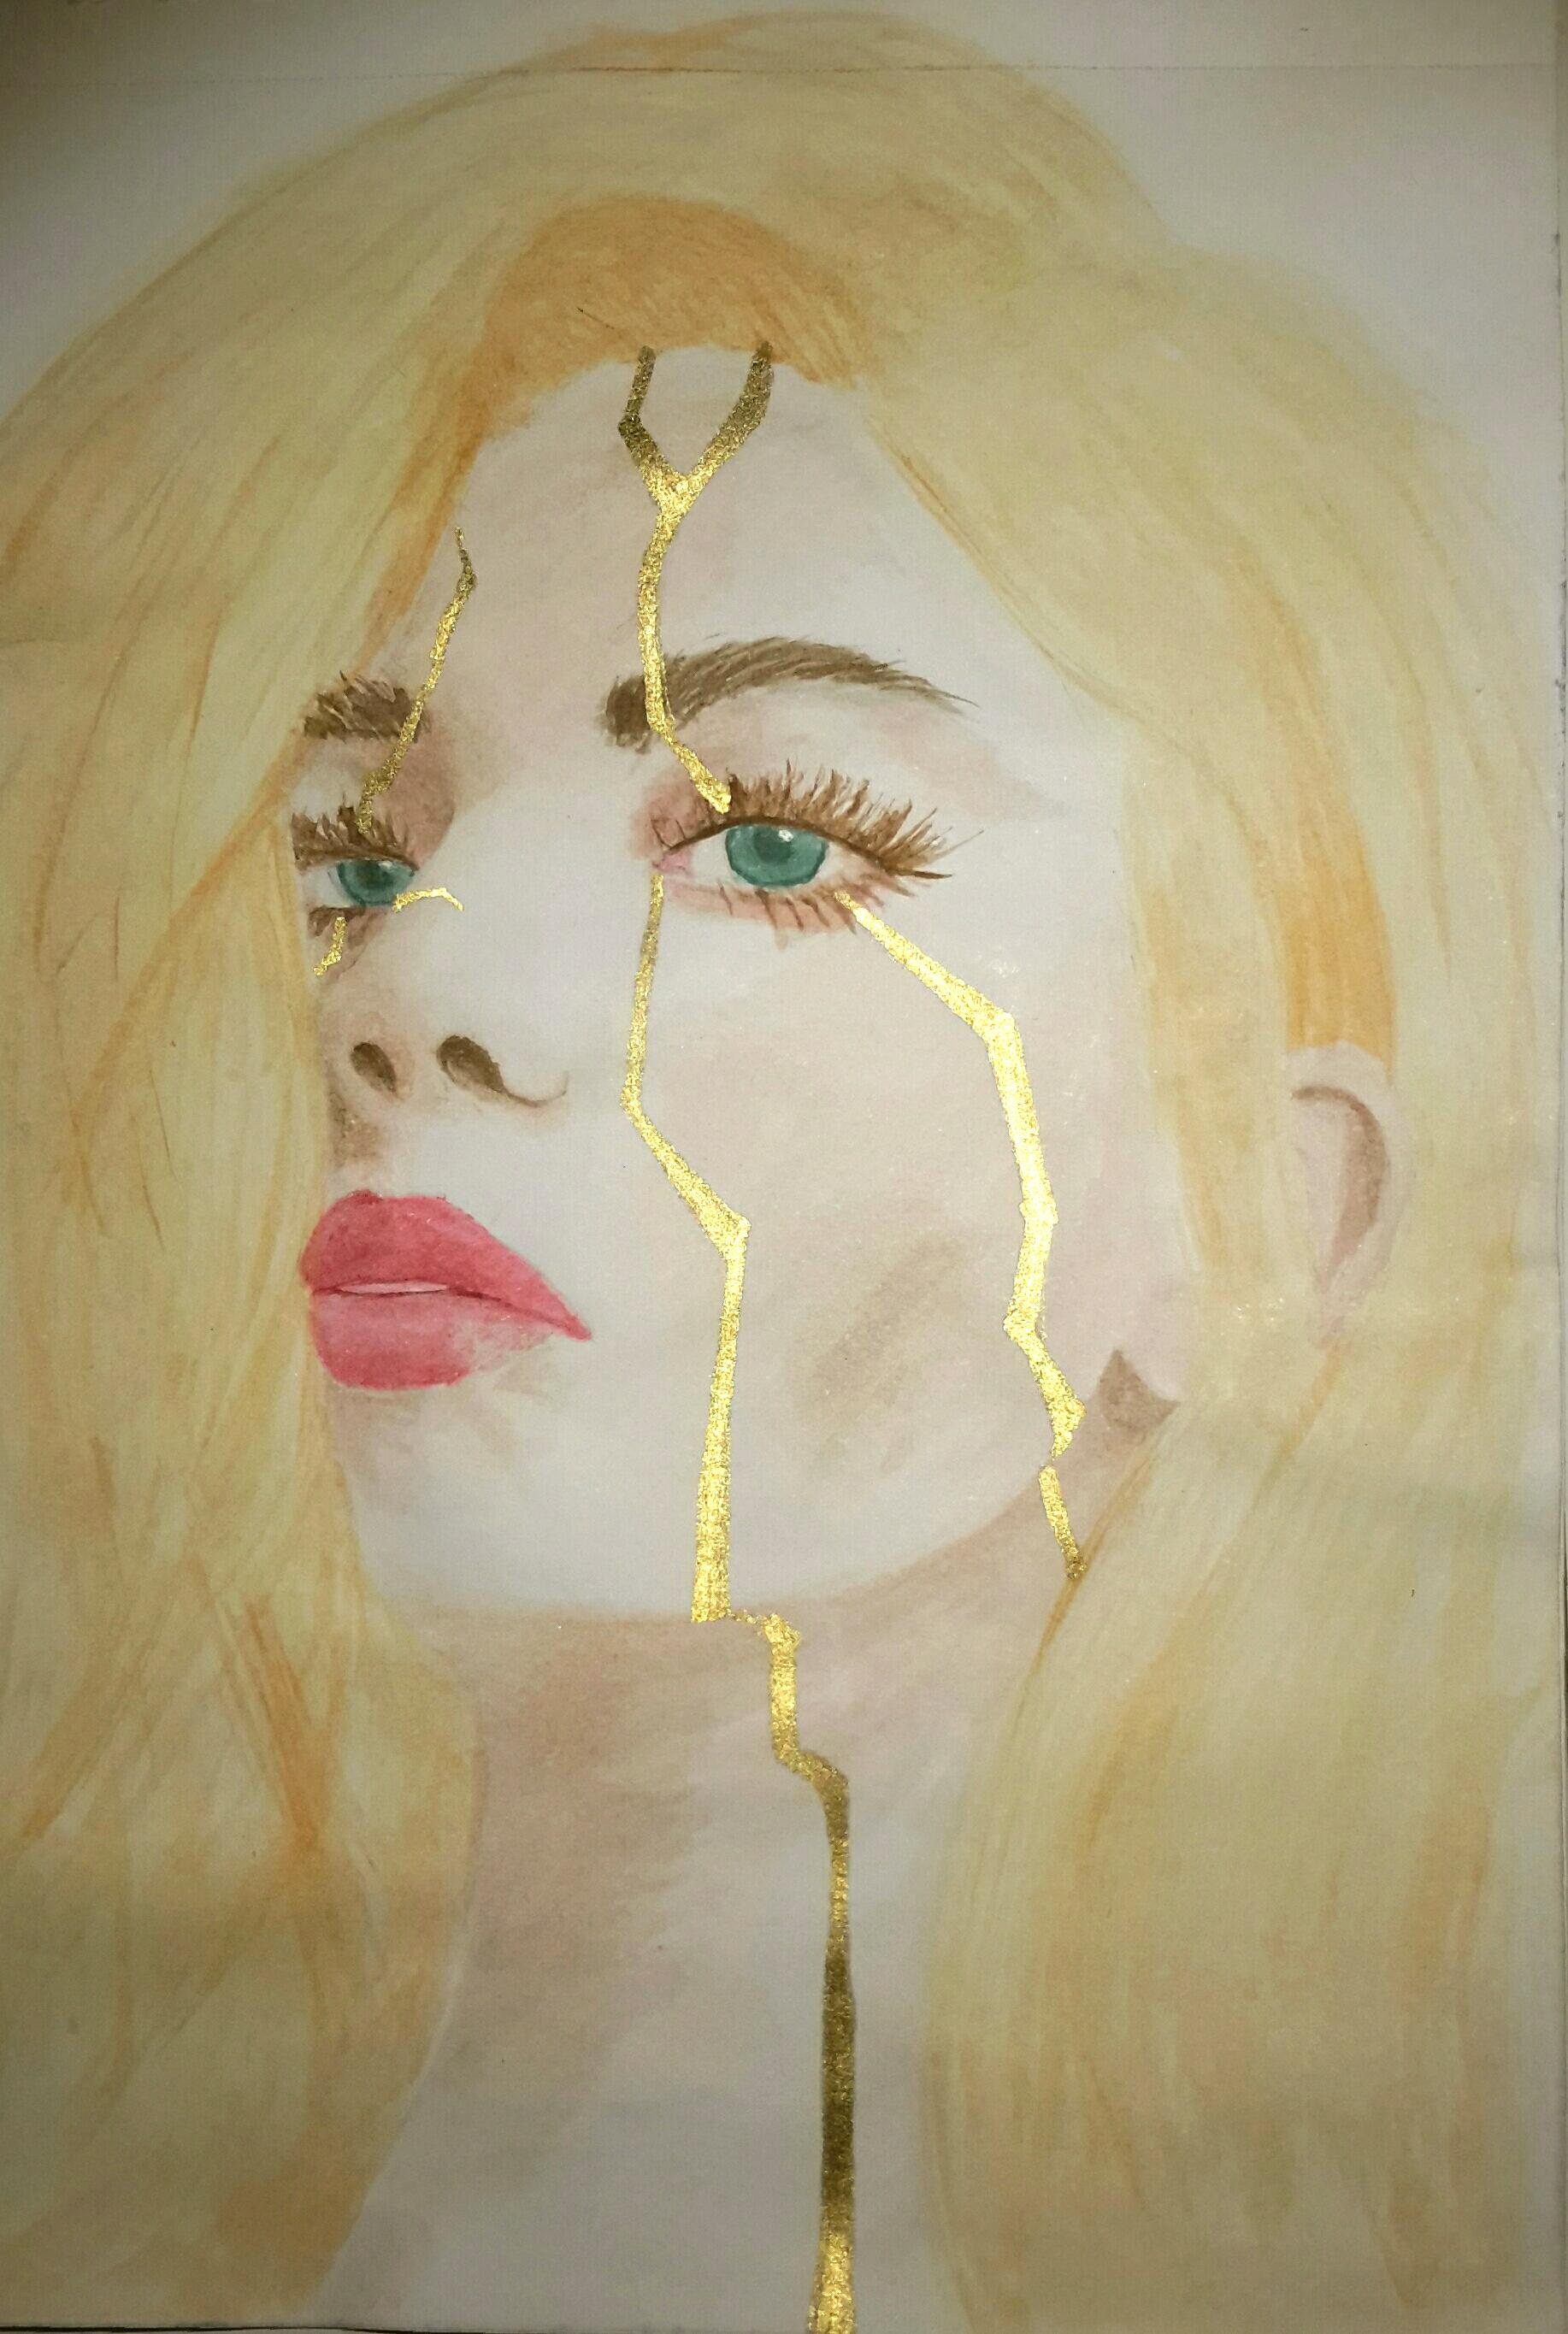 A defiant yet solemn female portrait with jagged golden lines to emulate the golden lines traditionally seen in Kintsugi pottery